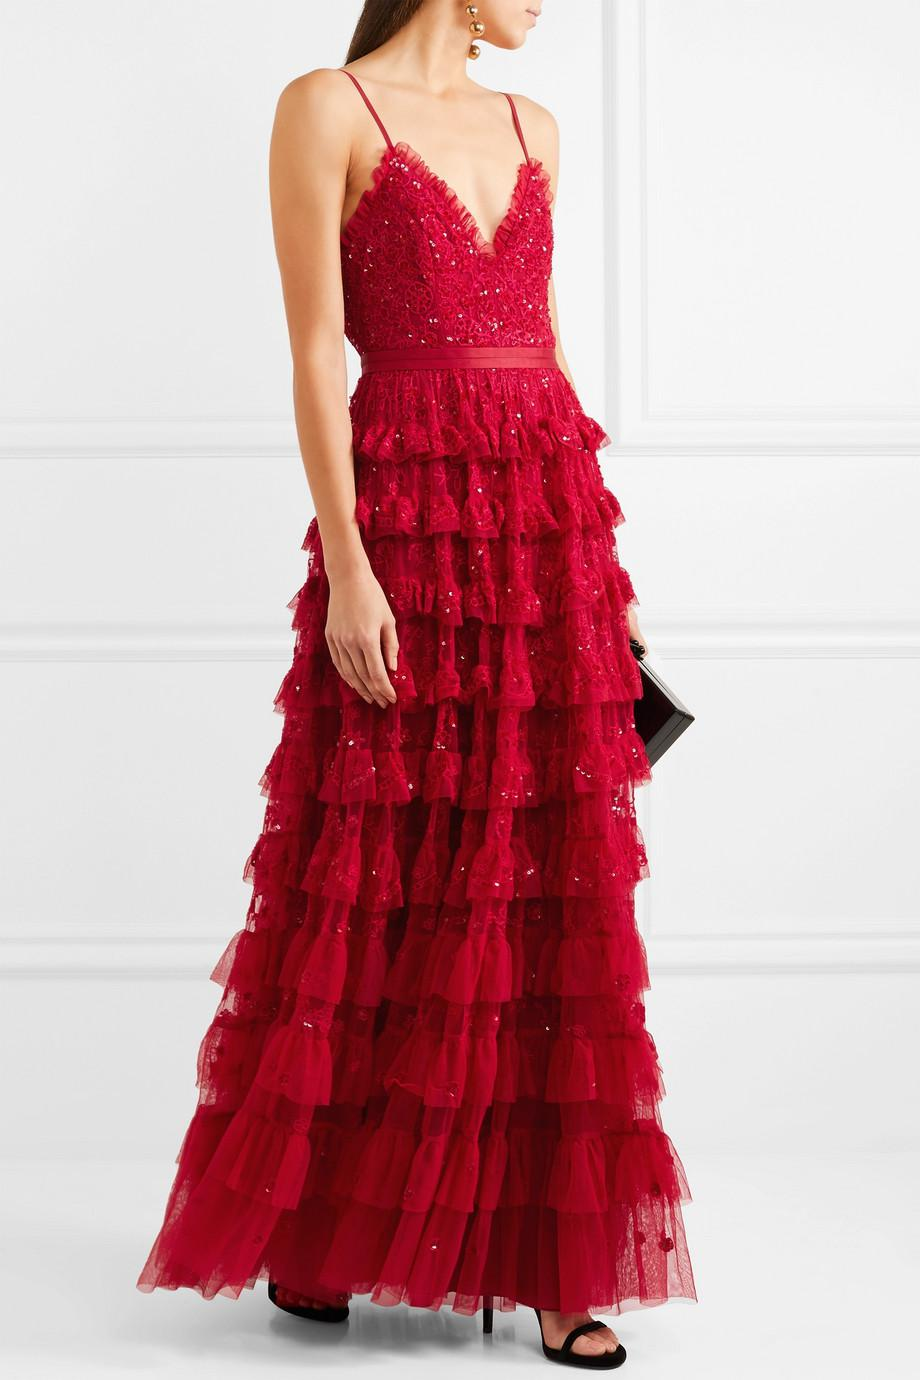 Lyst - Needle & Thread Marie Tiered Embellished Tulle Gown in Red ...